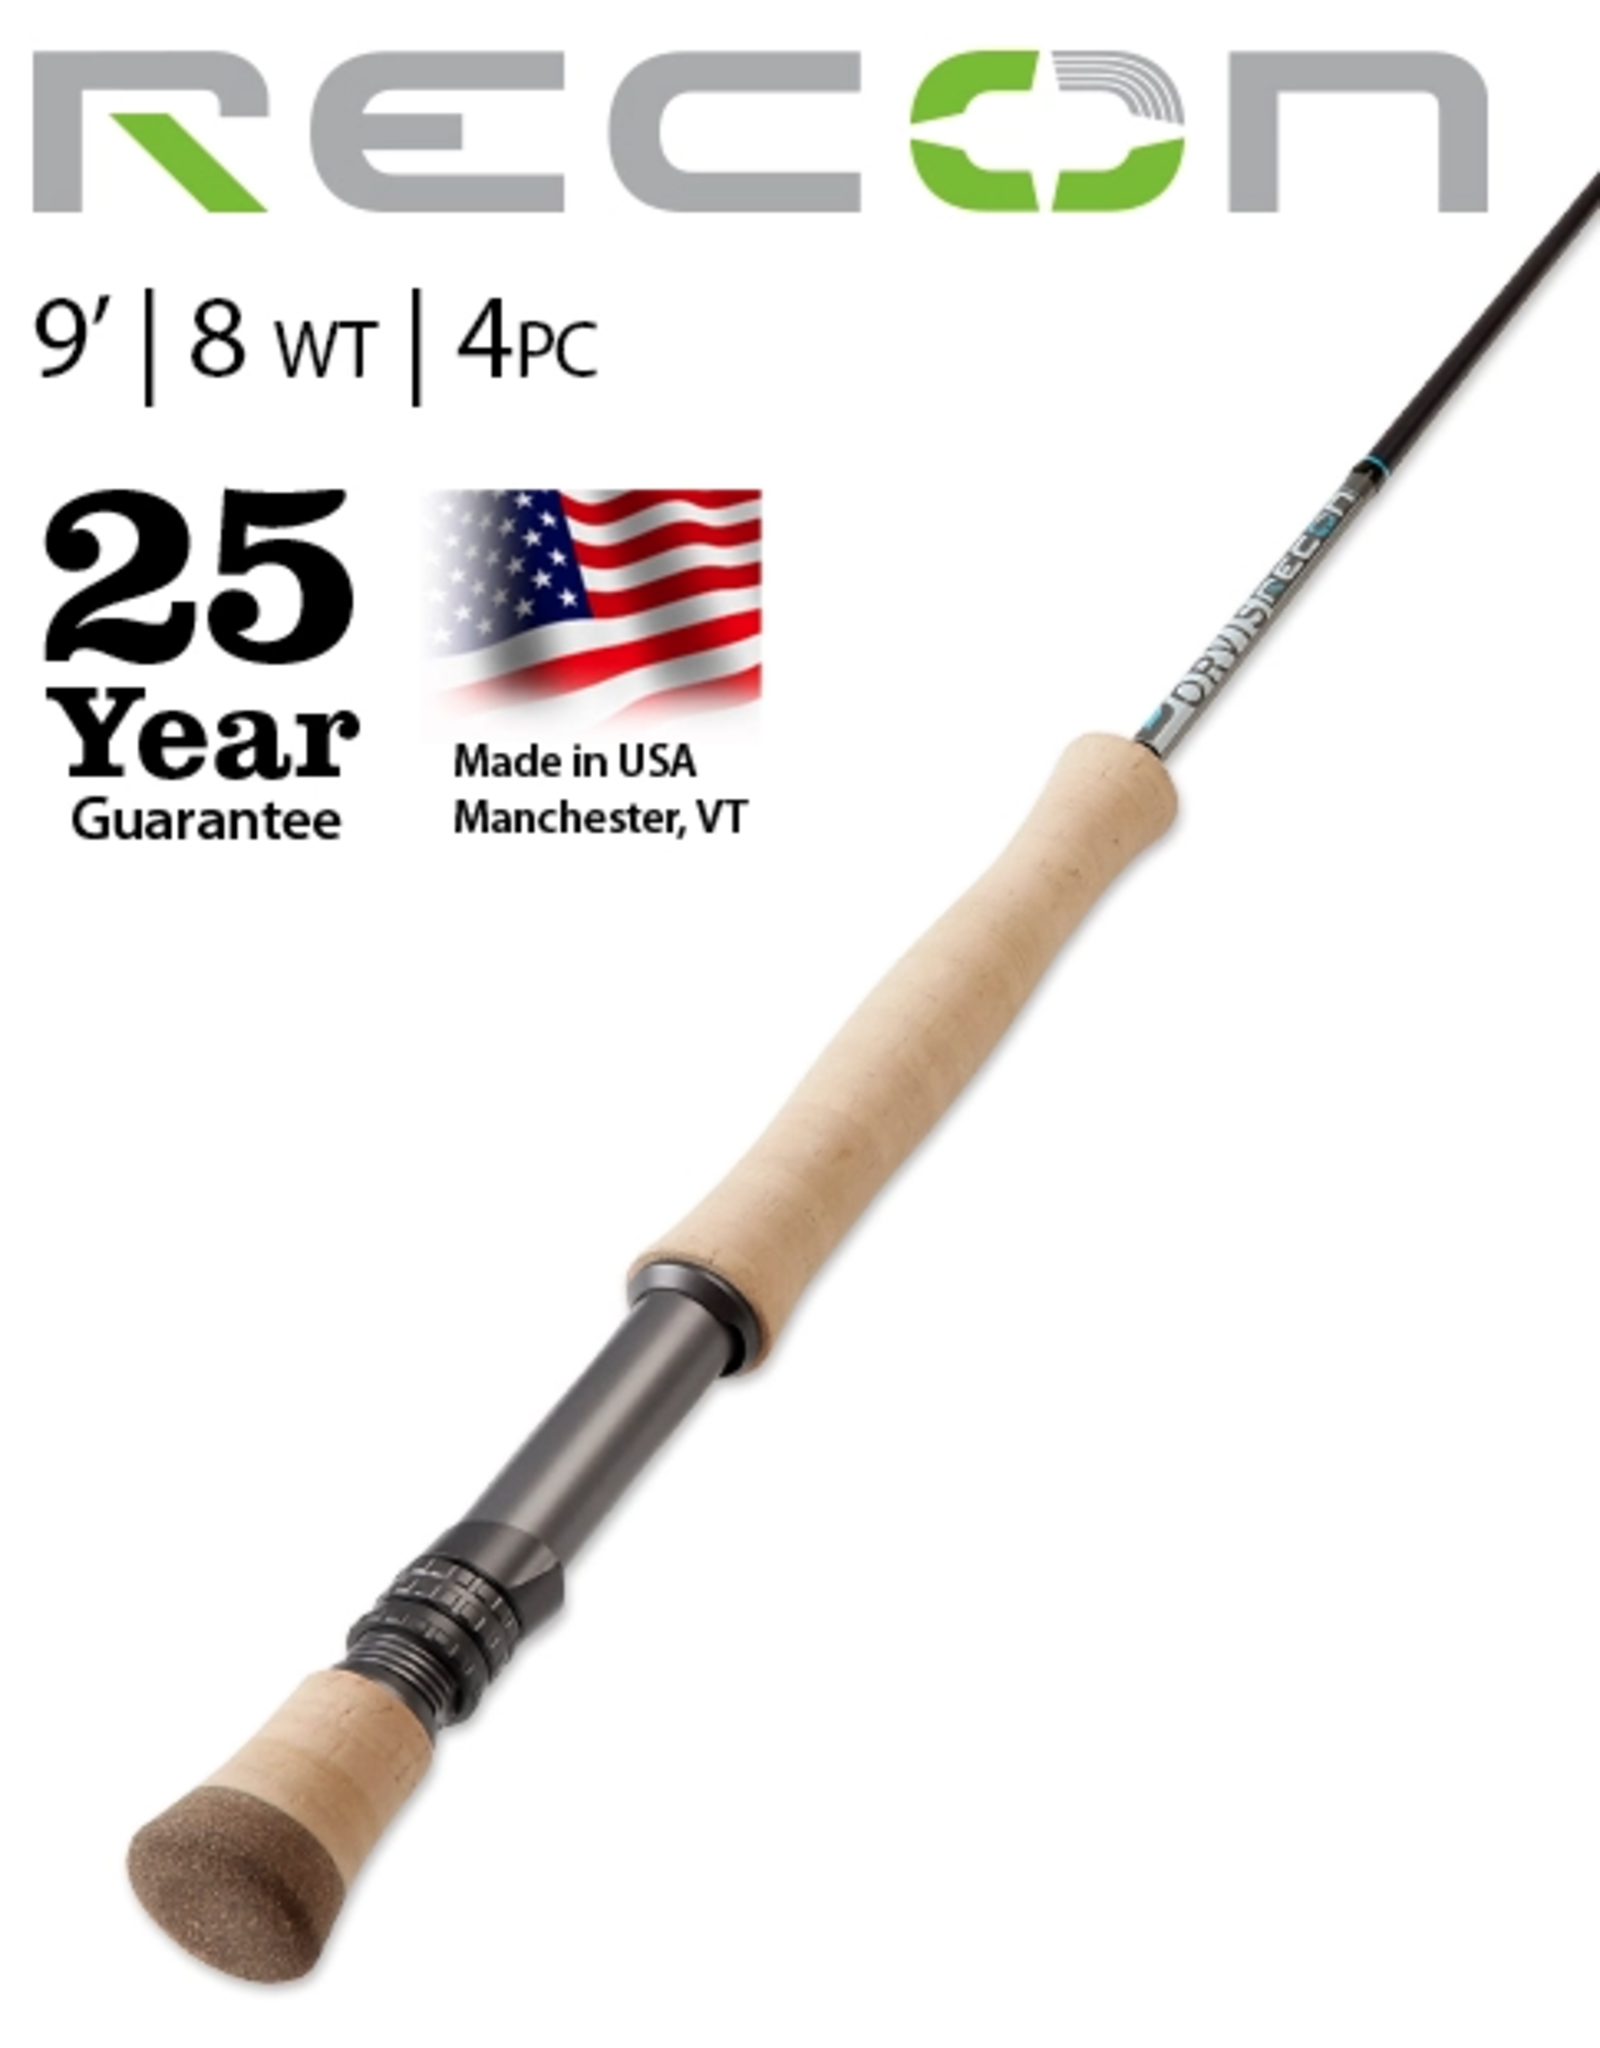 The Recon 8-Weight 9' 4-Piece is the fly rod that can do it all